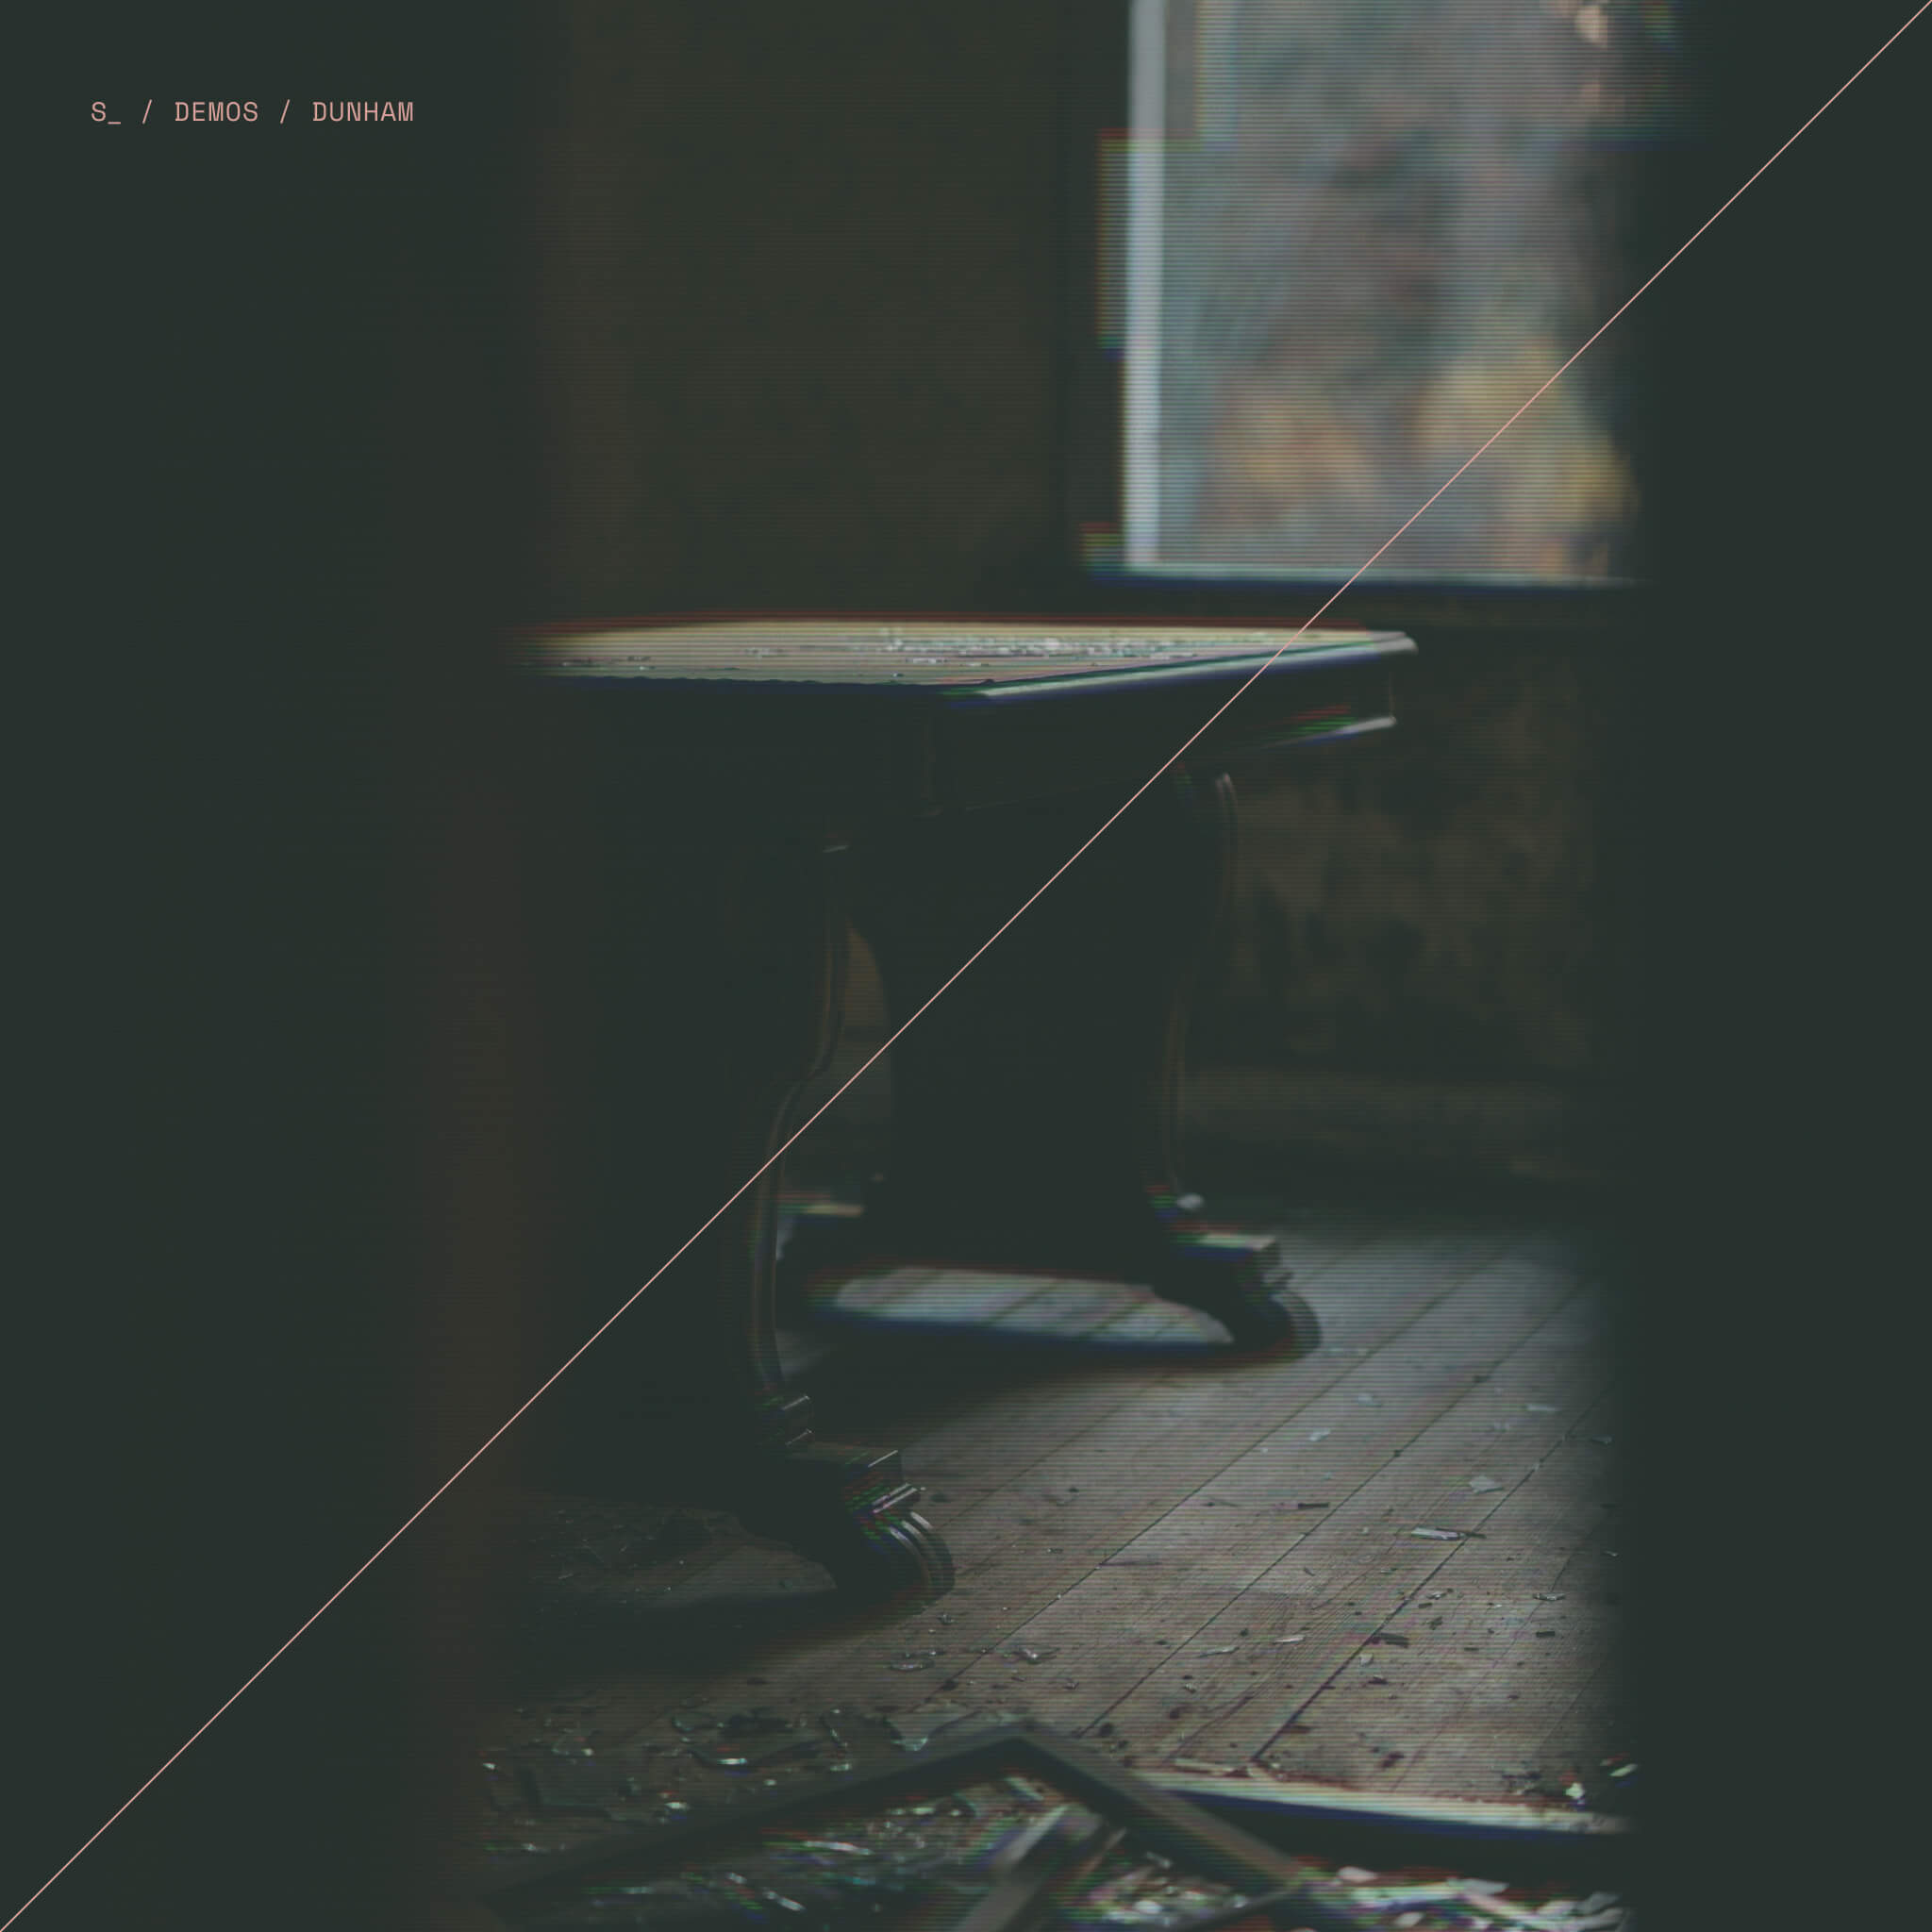 Image of an abandoned room. The album cover for Dunham